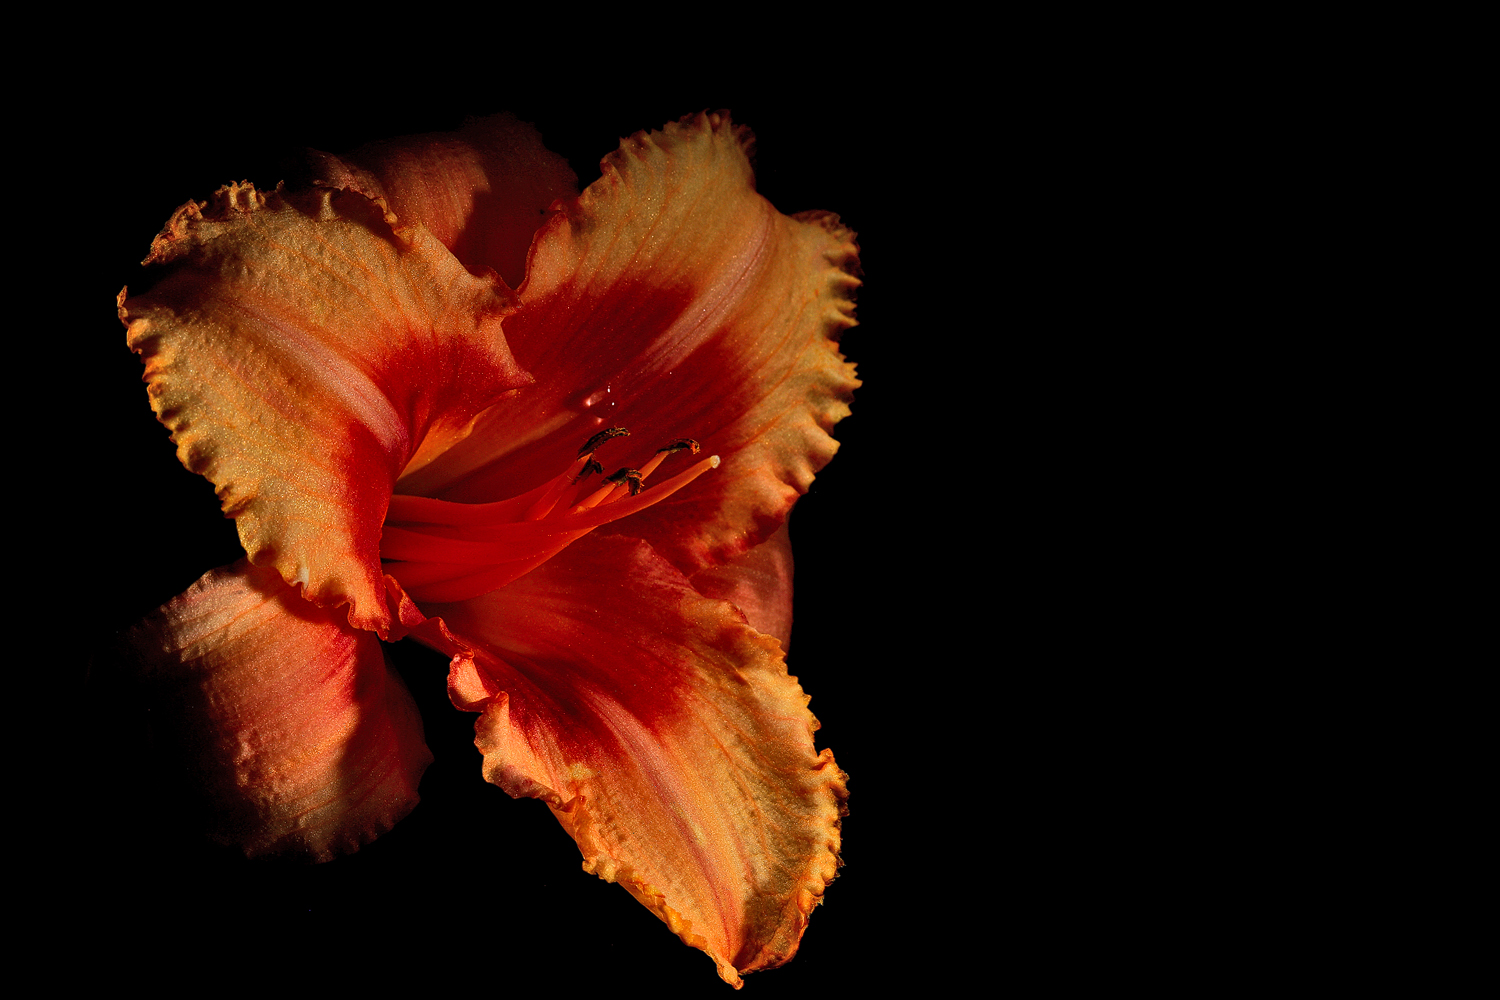 peachy frilly lily img aw author sava gregory and verena